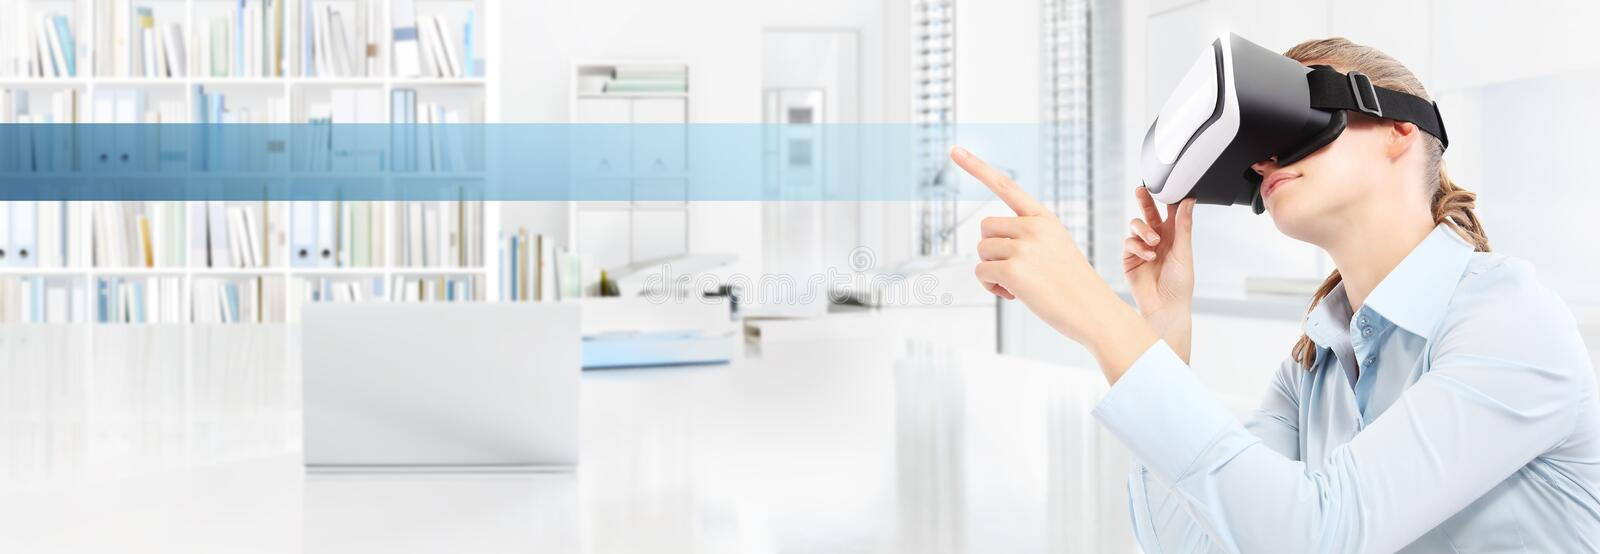 Woman wearing virtual reality glasses in office, hand pointing touch screen with empty icon, web banner copy space stock photo